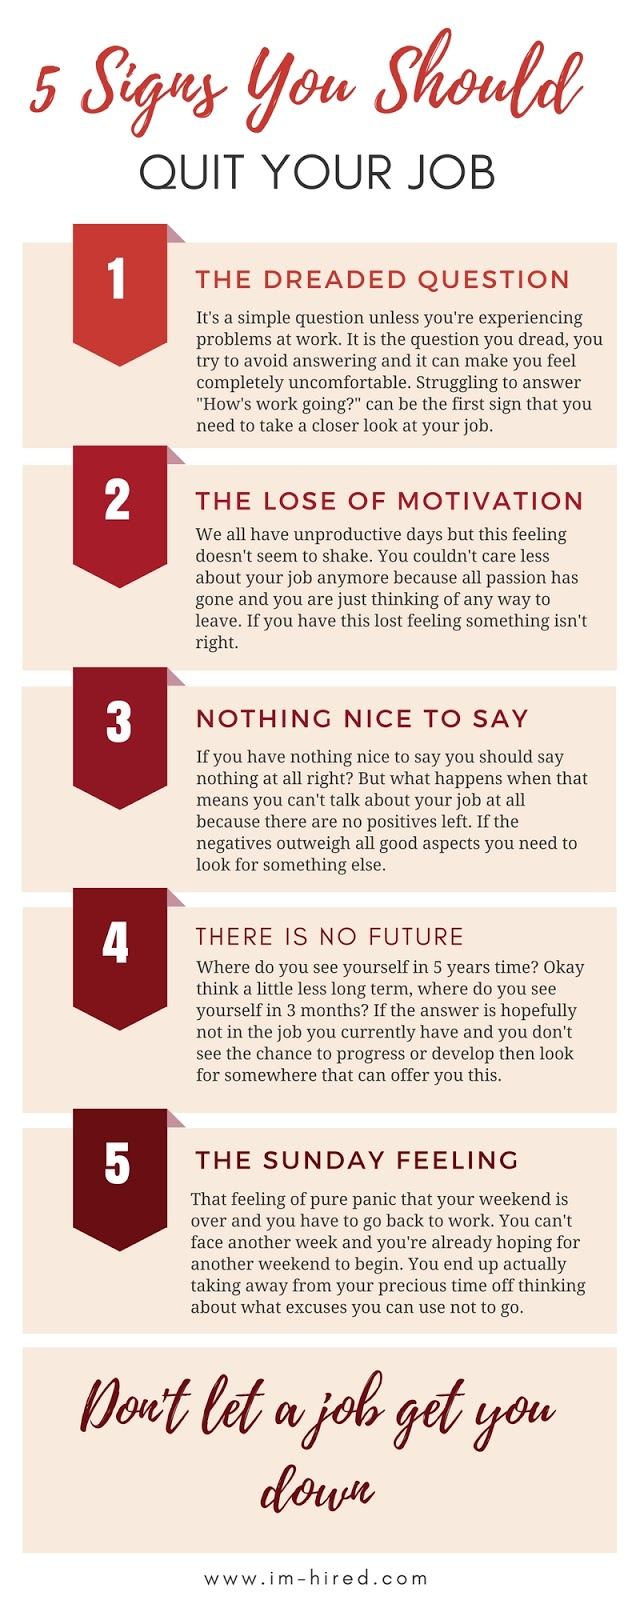 5 Signs You Should Quit (The Infographic)